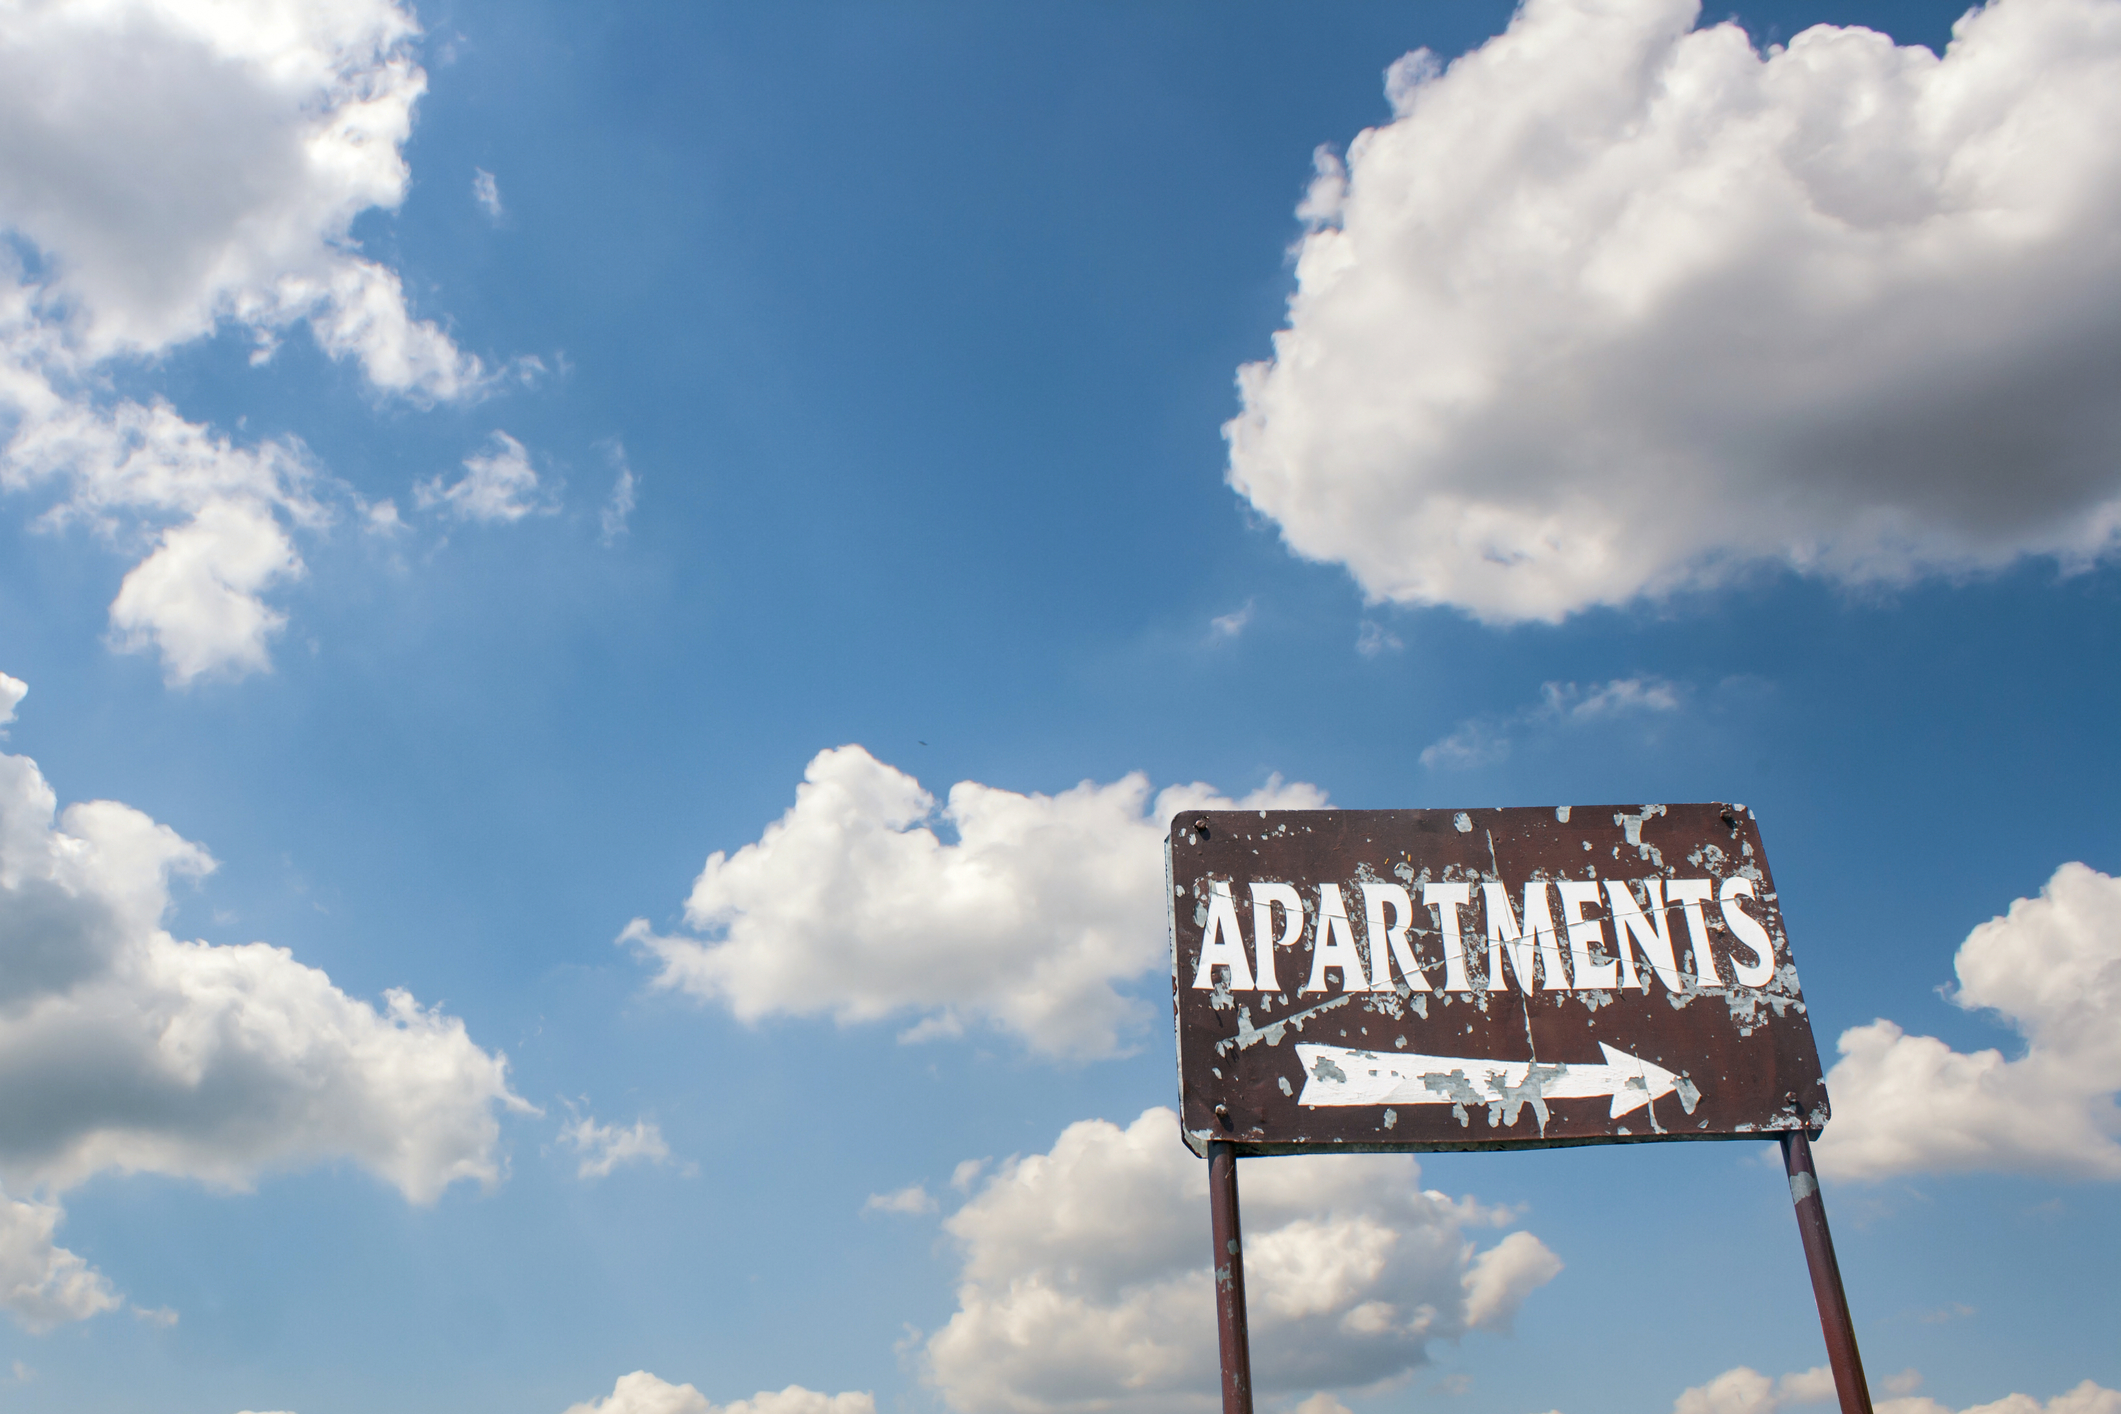 Apartments sign